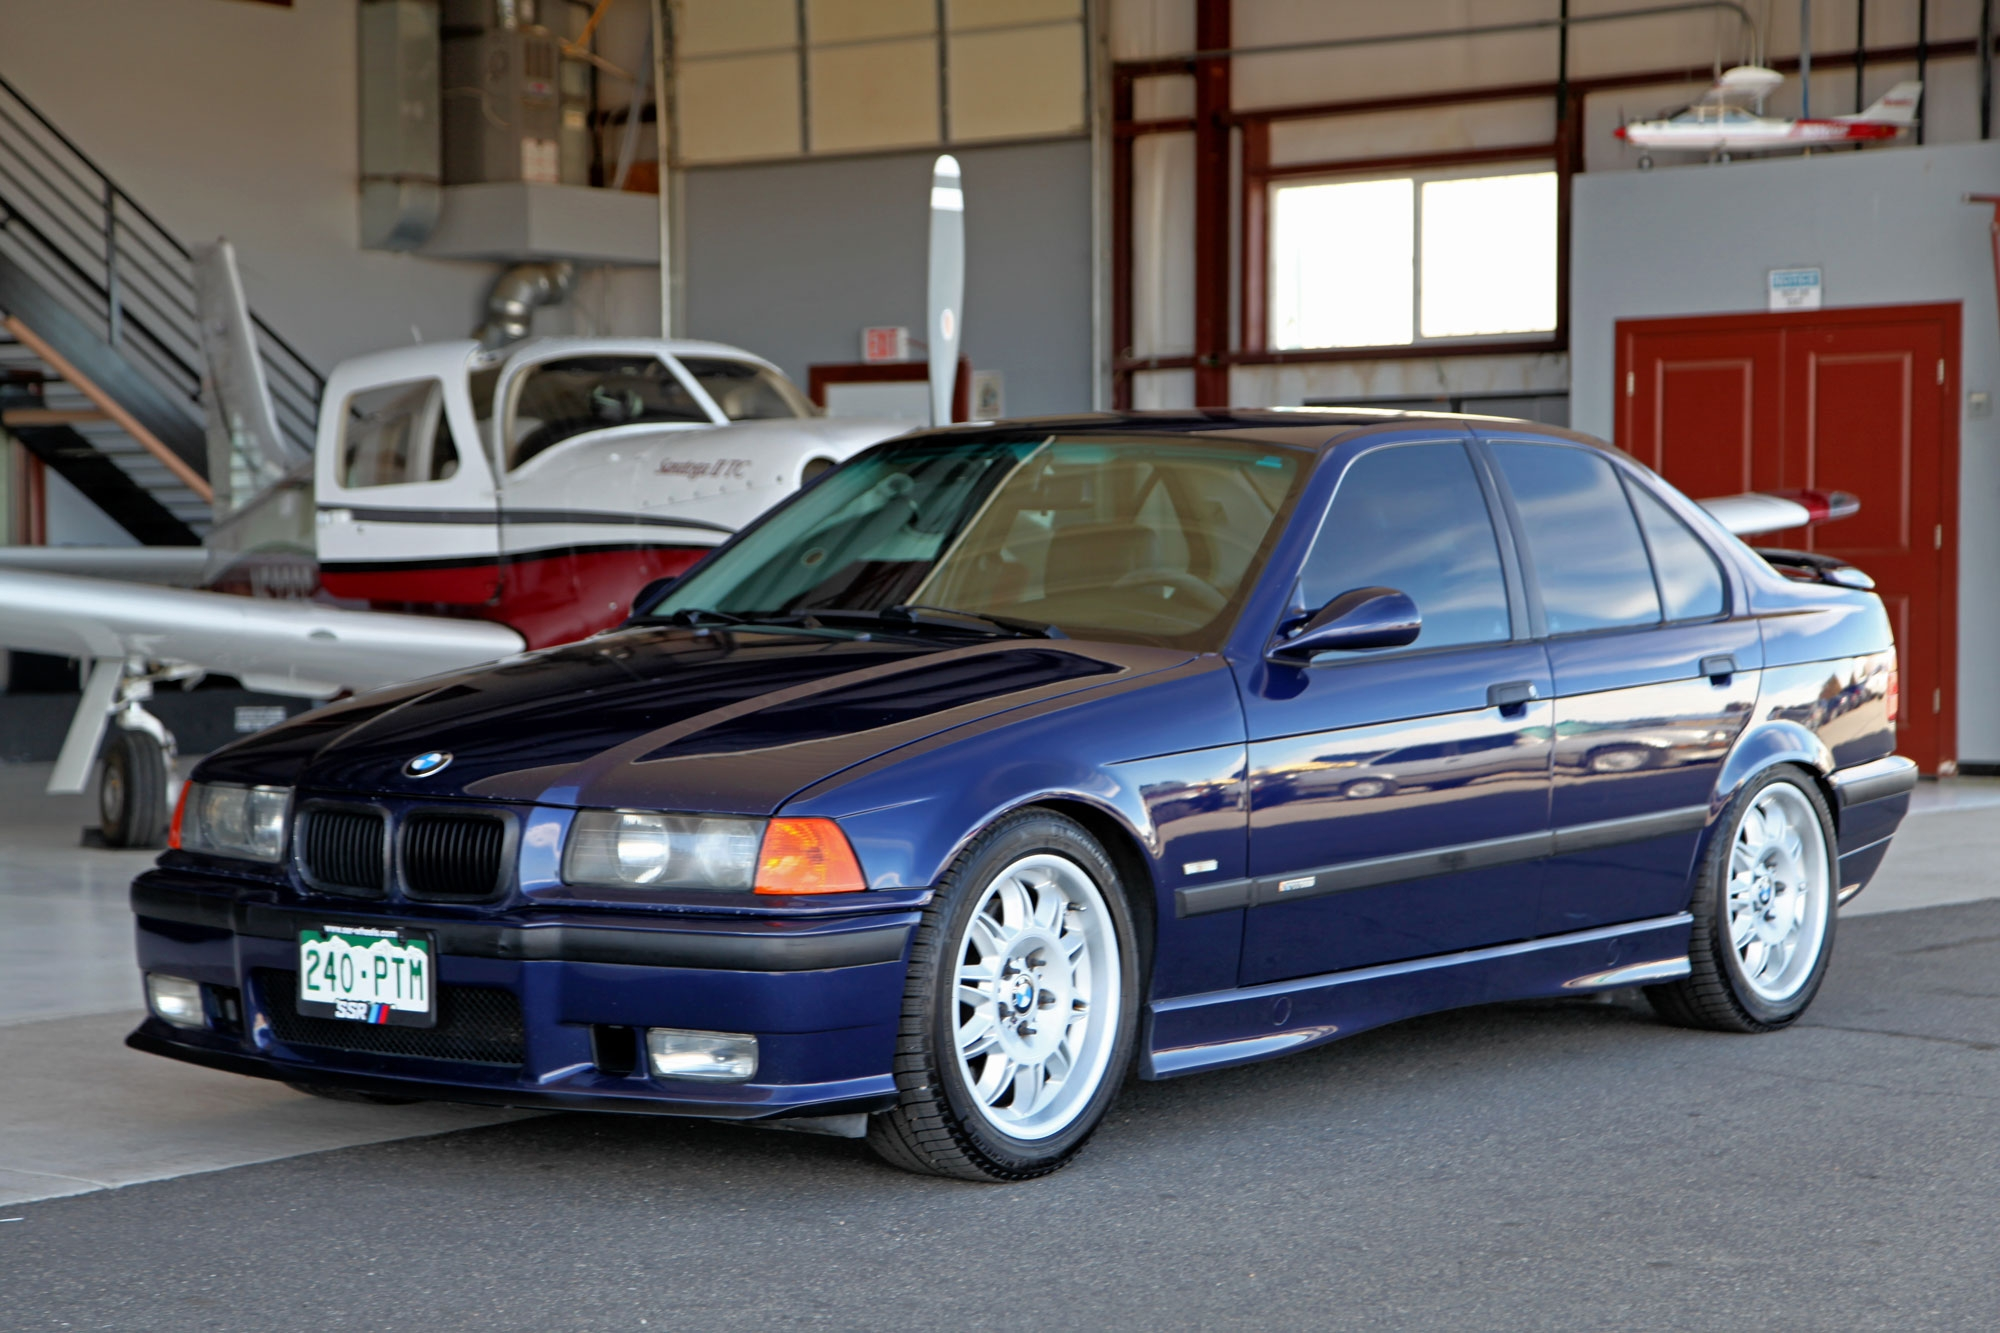 1998 BMW (E36) Supercharged 318i Sedan | Glen Shelly Auto ...